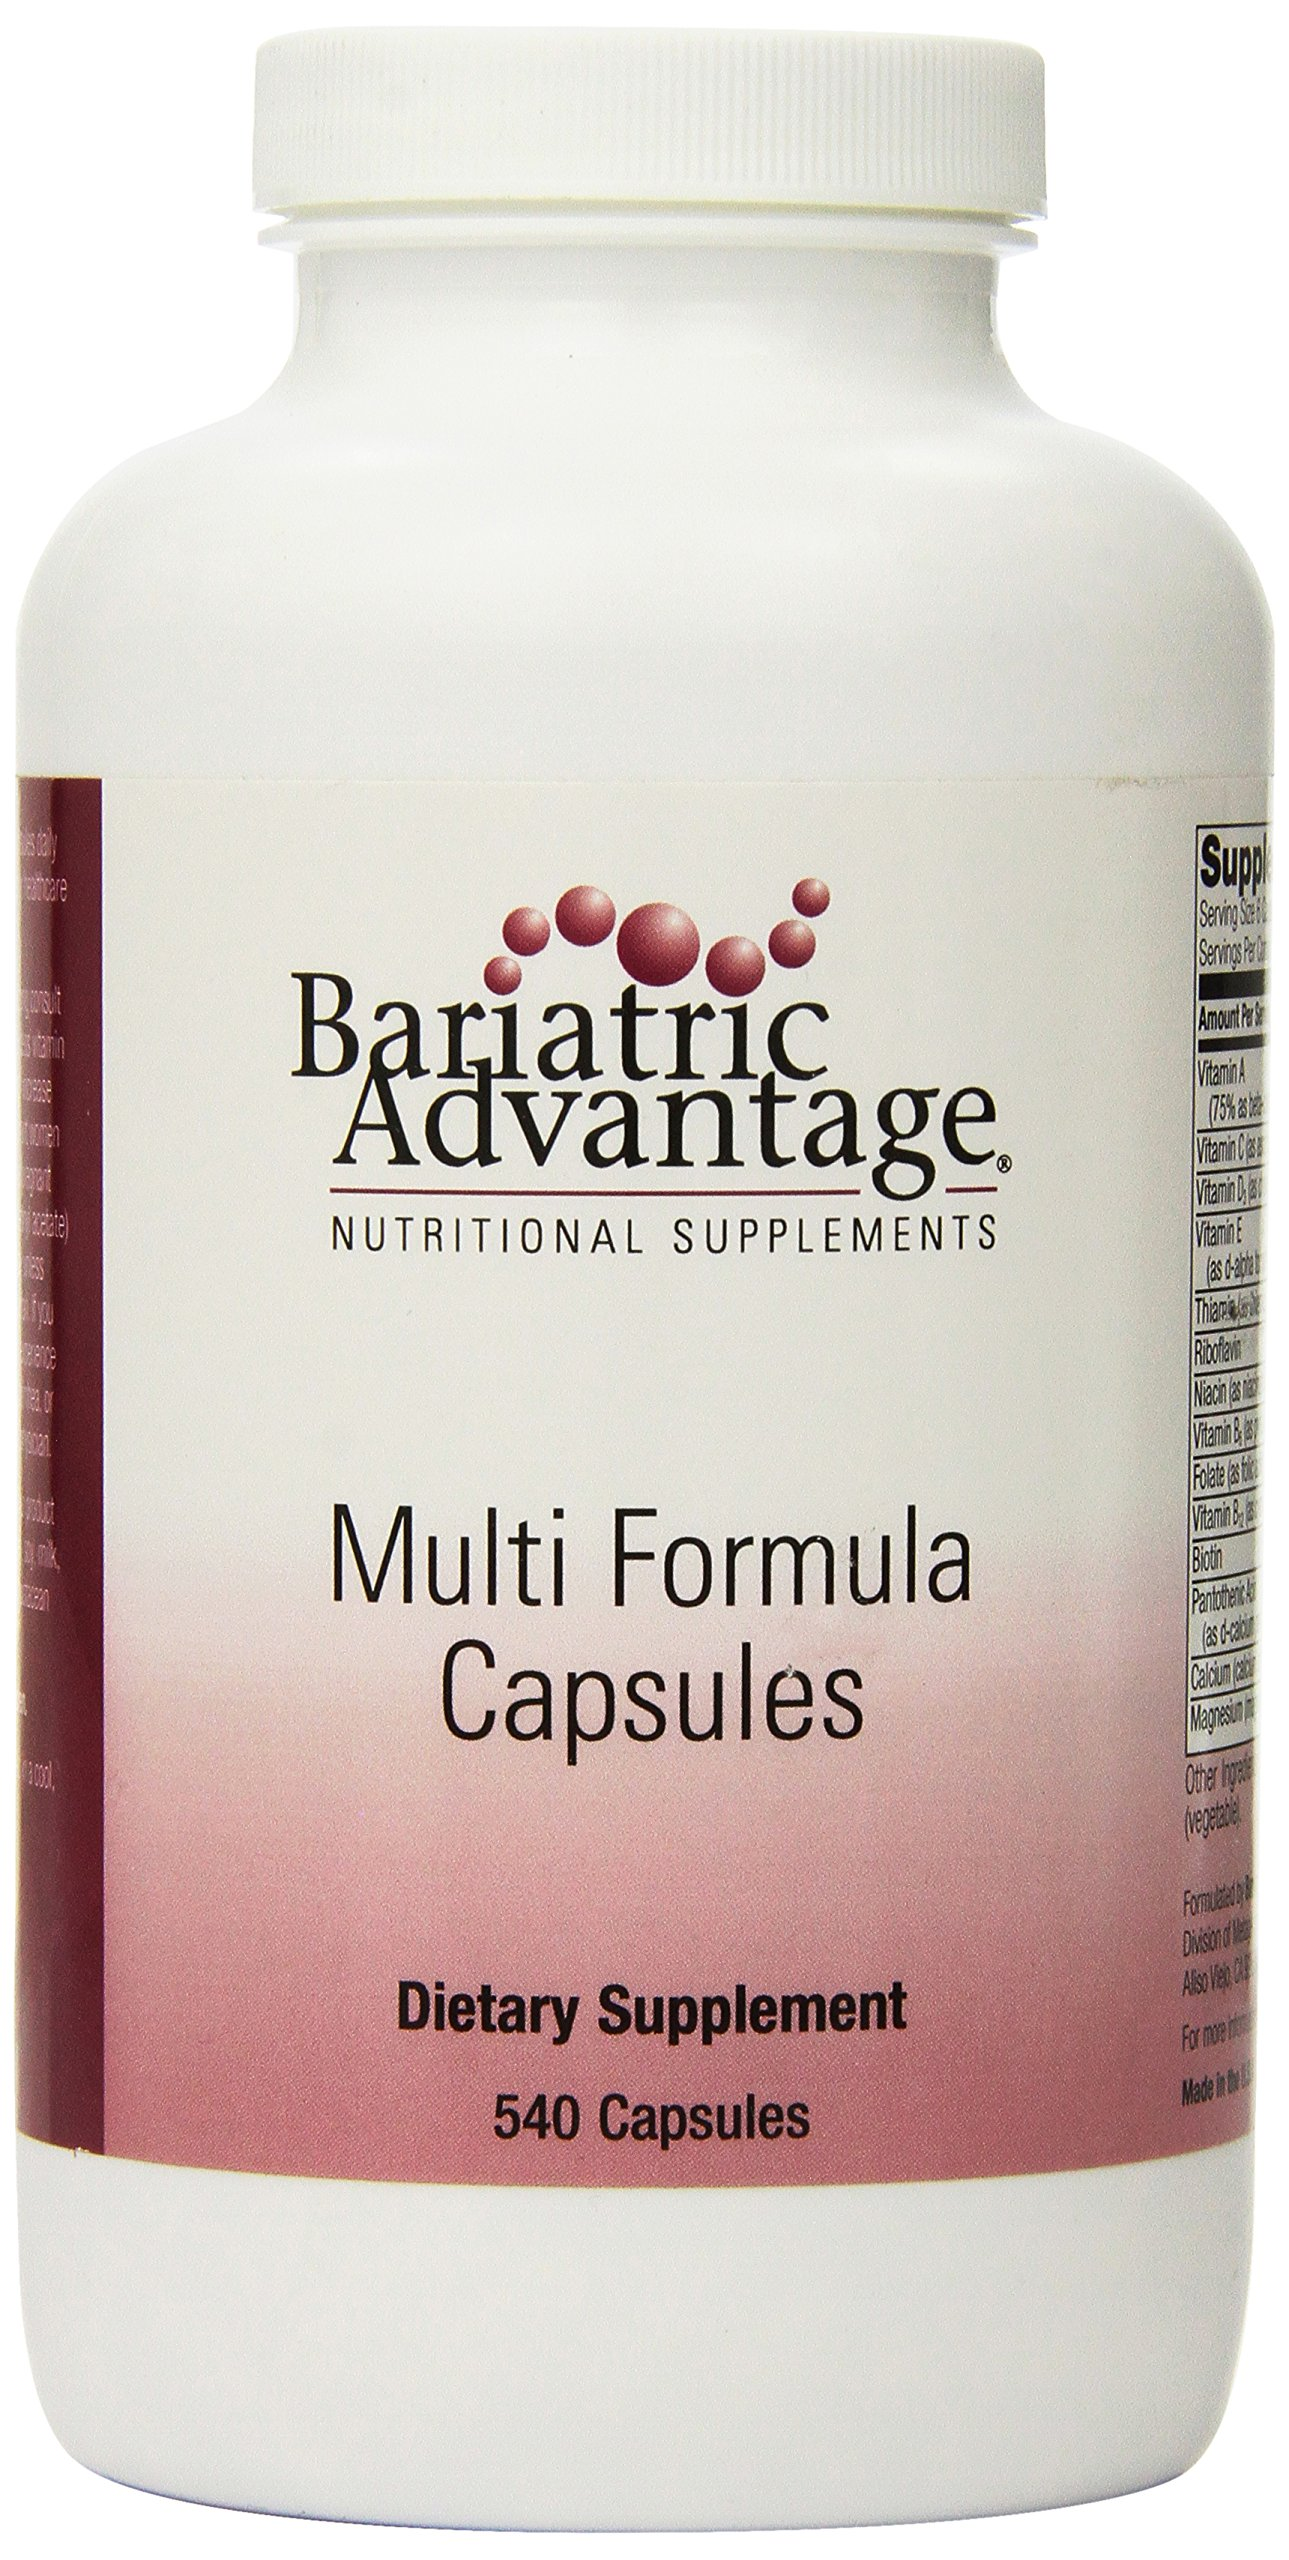 Bariatric Advantage - Multi-Form Capsules, 540 Count